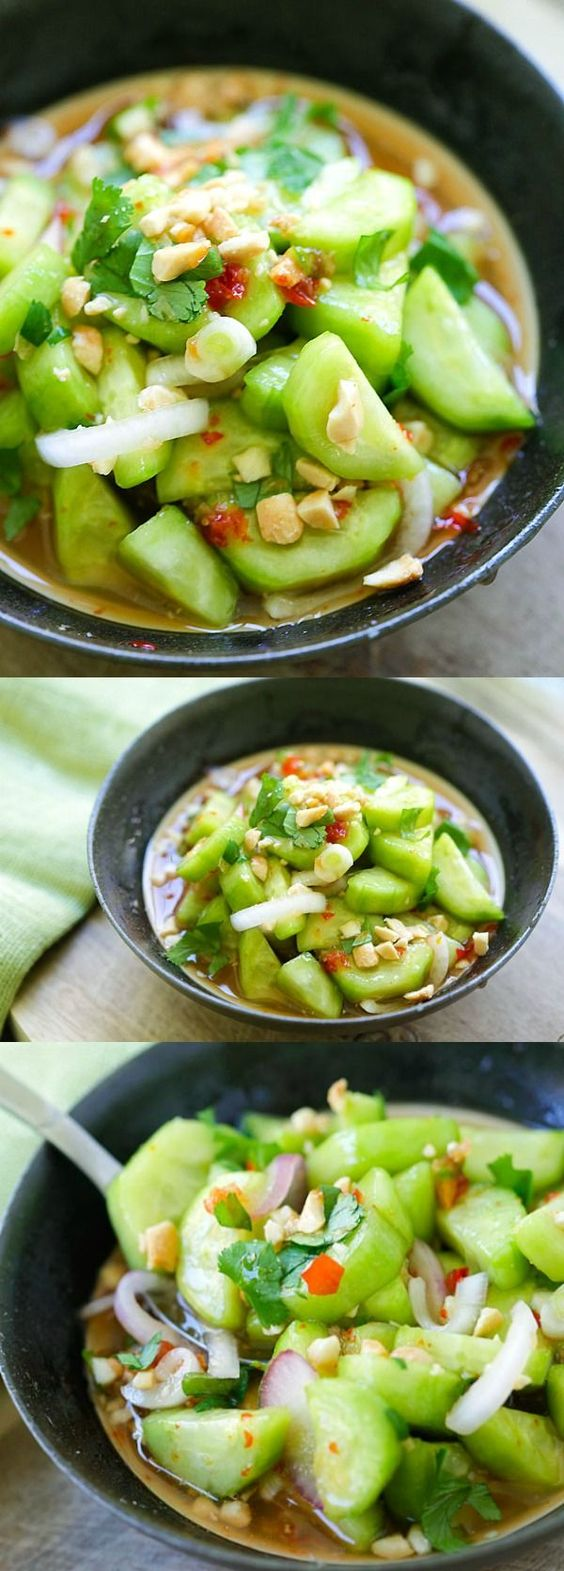 Thai Cucumber Salad - easiest and best homemade Thai cucumber salad recipe that is better than your favorite Thai restaurants, guaranteed!